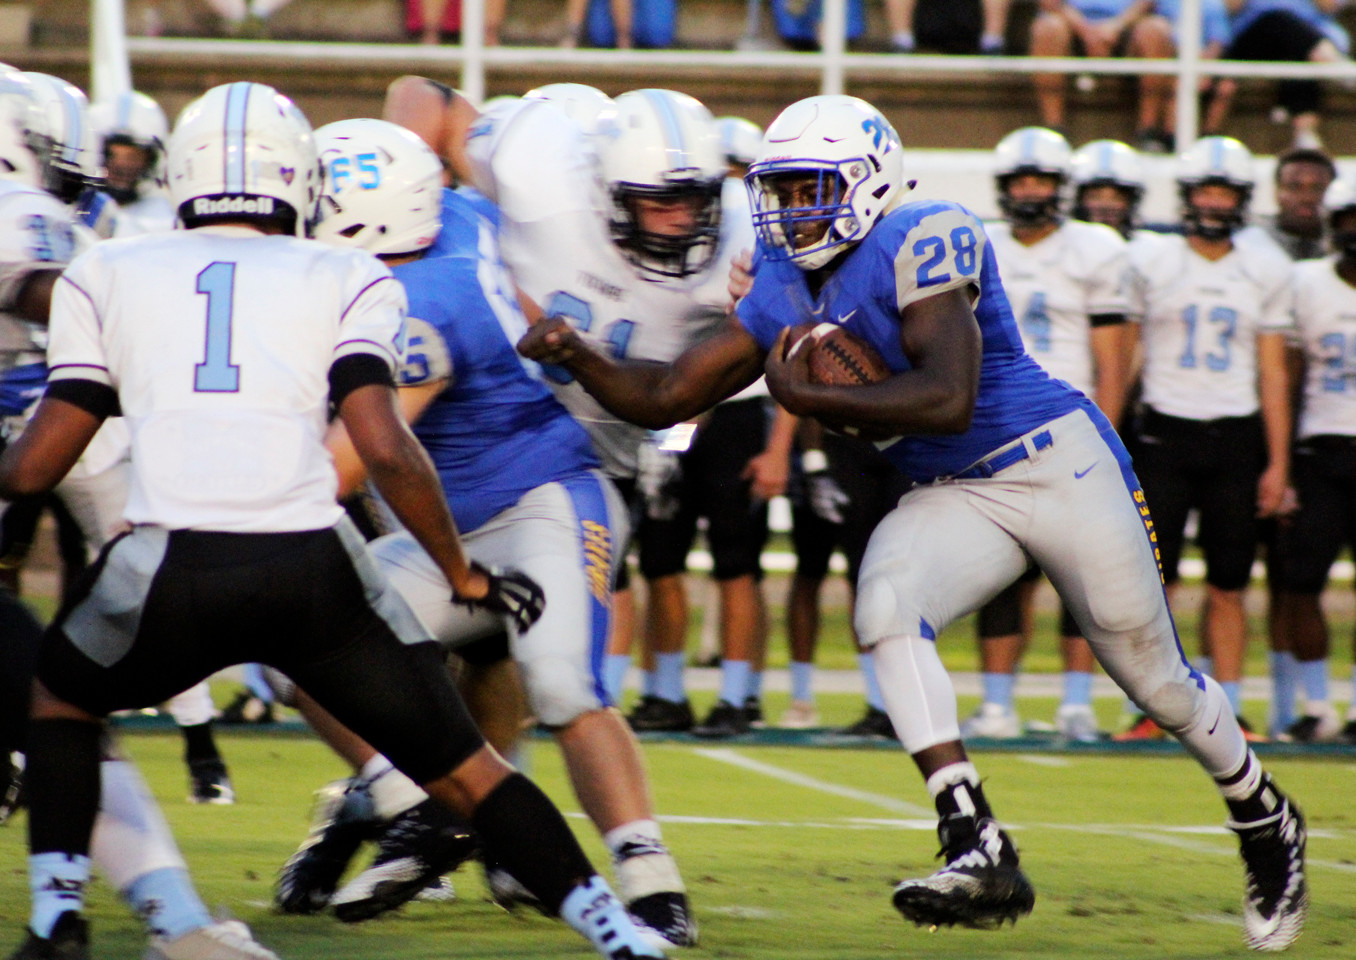 Senior running back Darnell Bell scored on a 26-yard run on the Pirates opening drive Friday night.